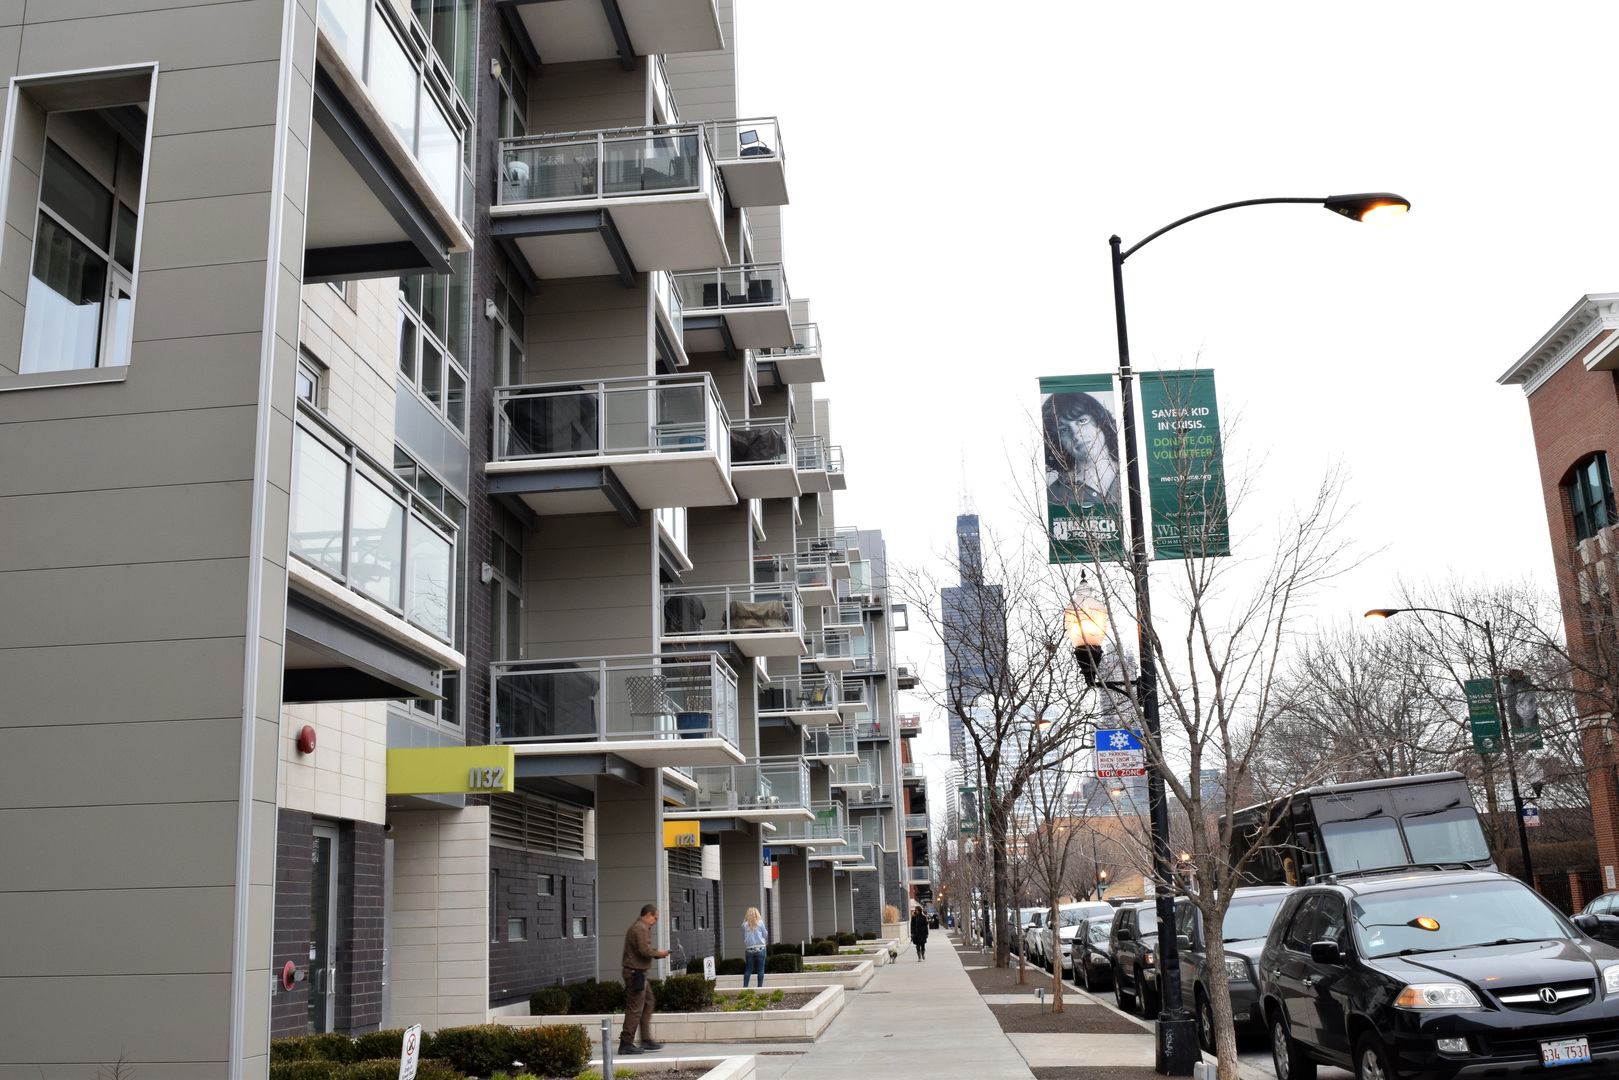 3 Apartment in Near West Side